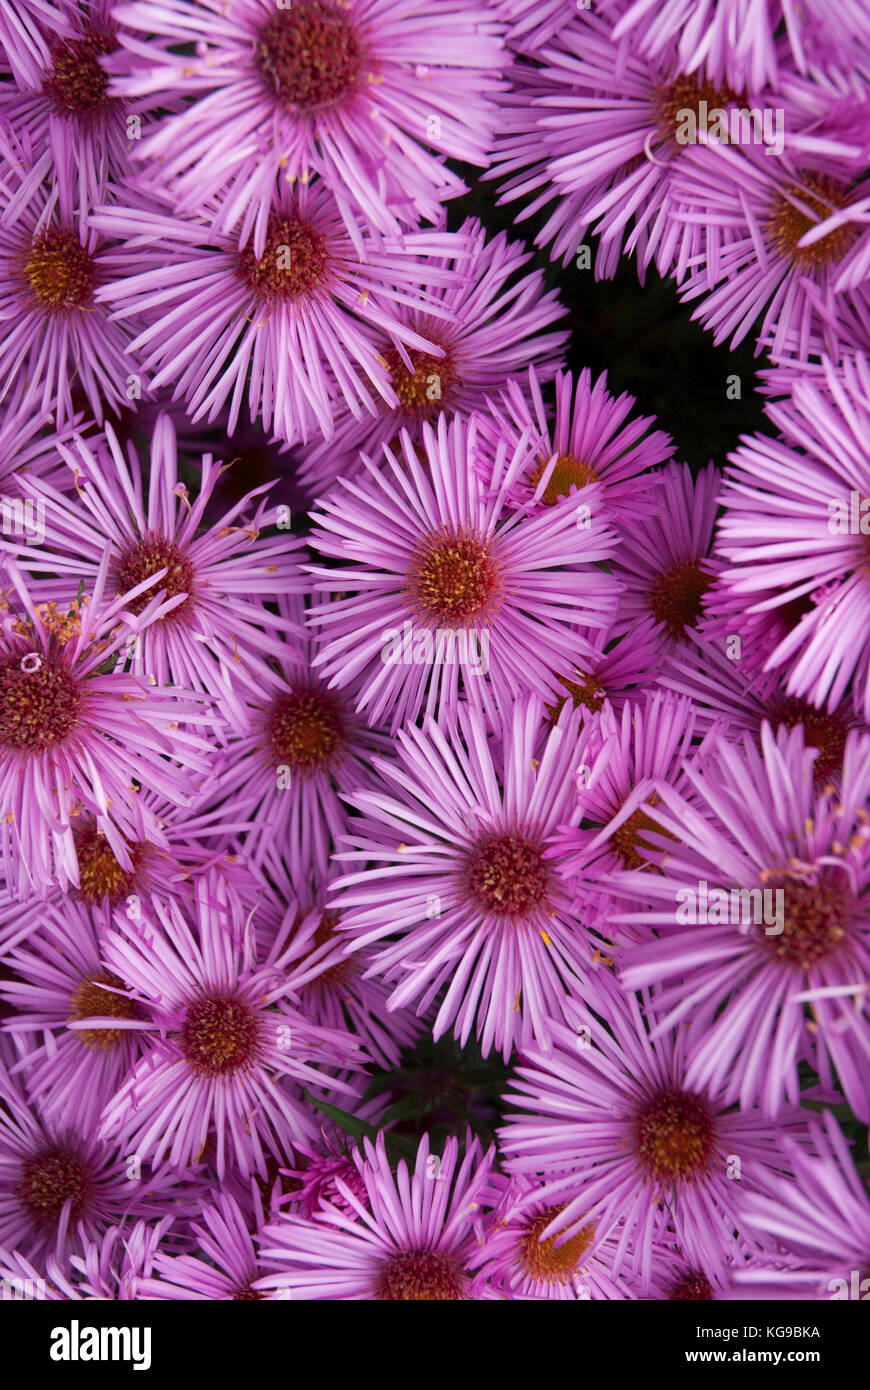 Colourful, bright pink asters/ asteraceae - Stock Image